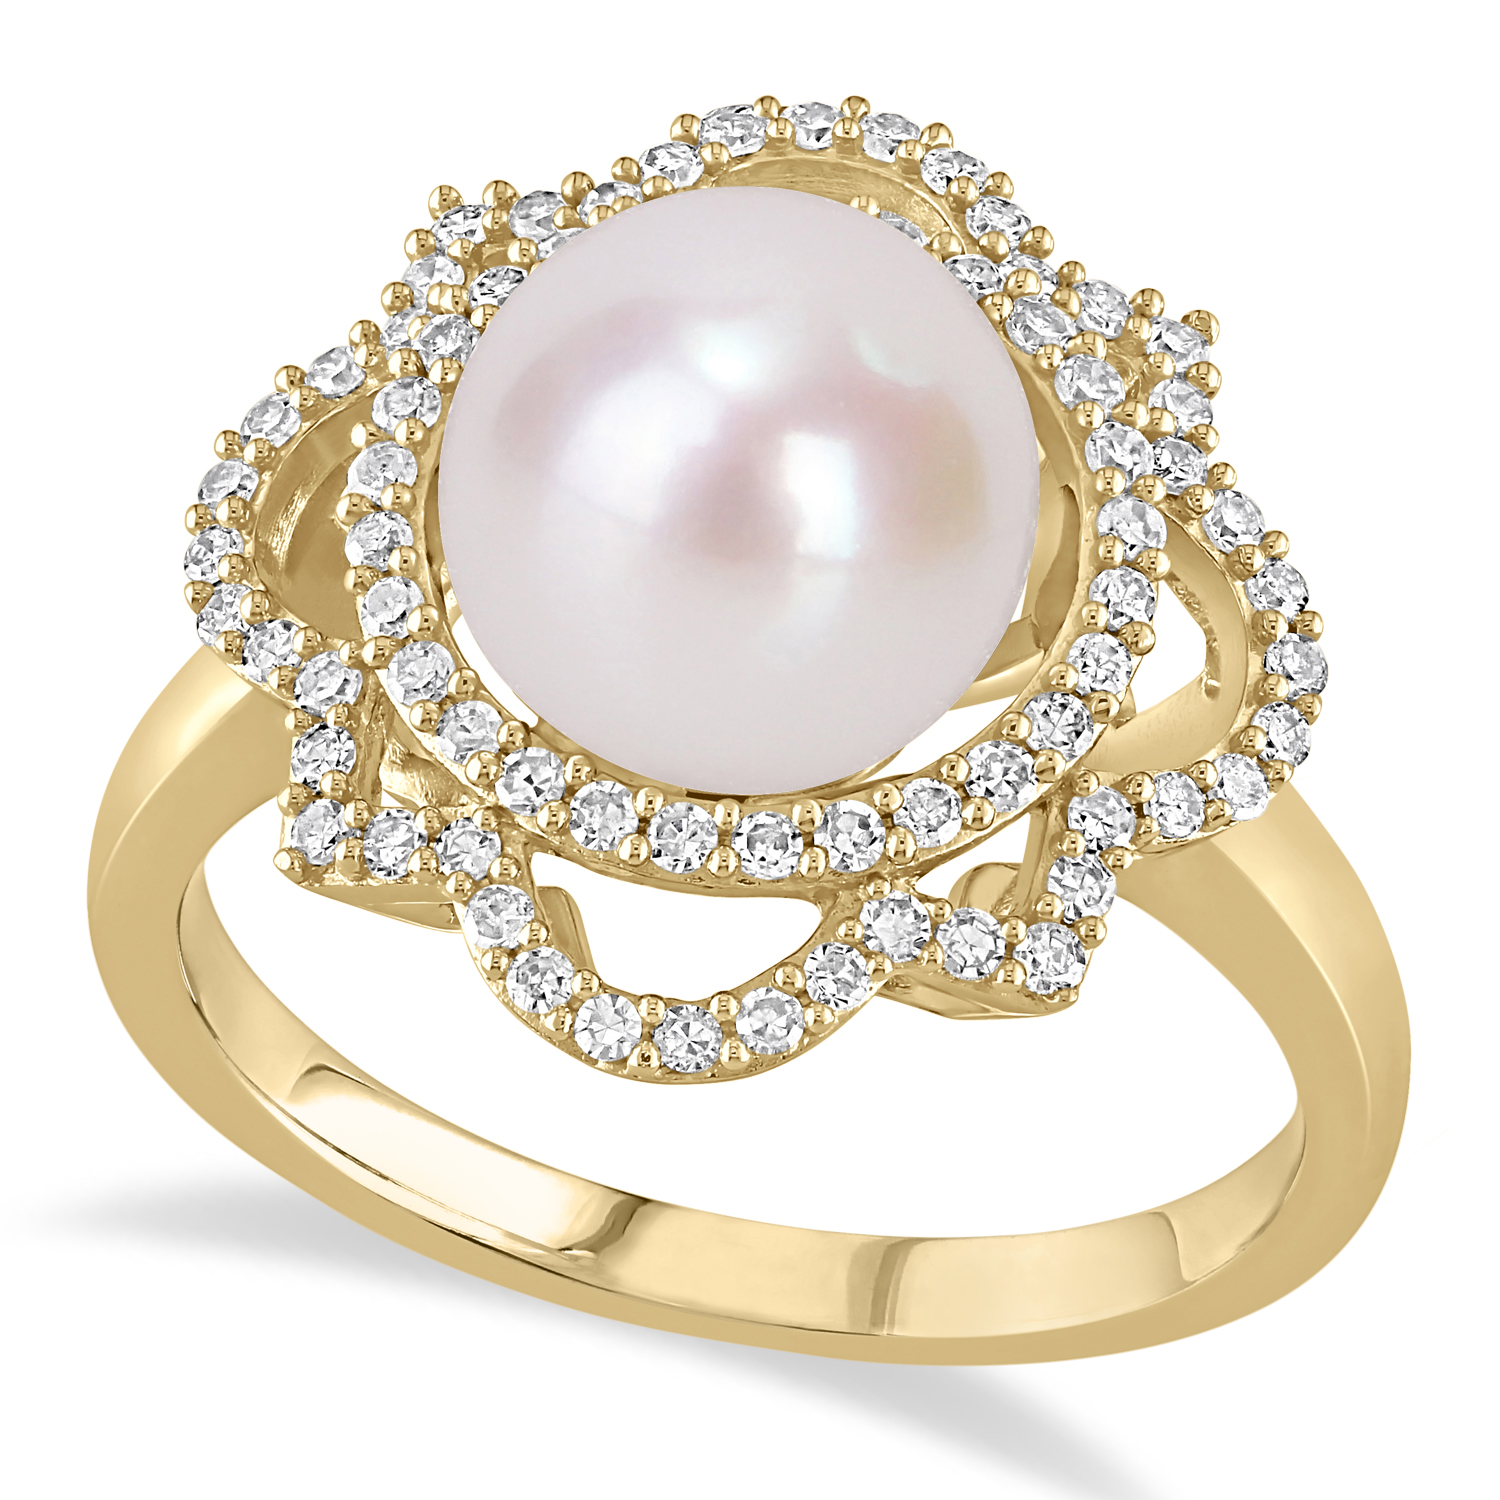 Round Freshwater Cultured White Pearl and Diamond Ring 14k Yellow Gold (0.375 ct)